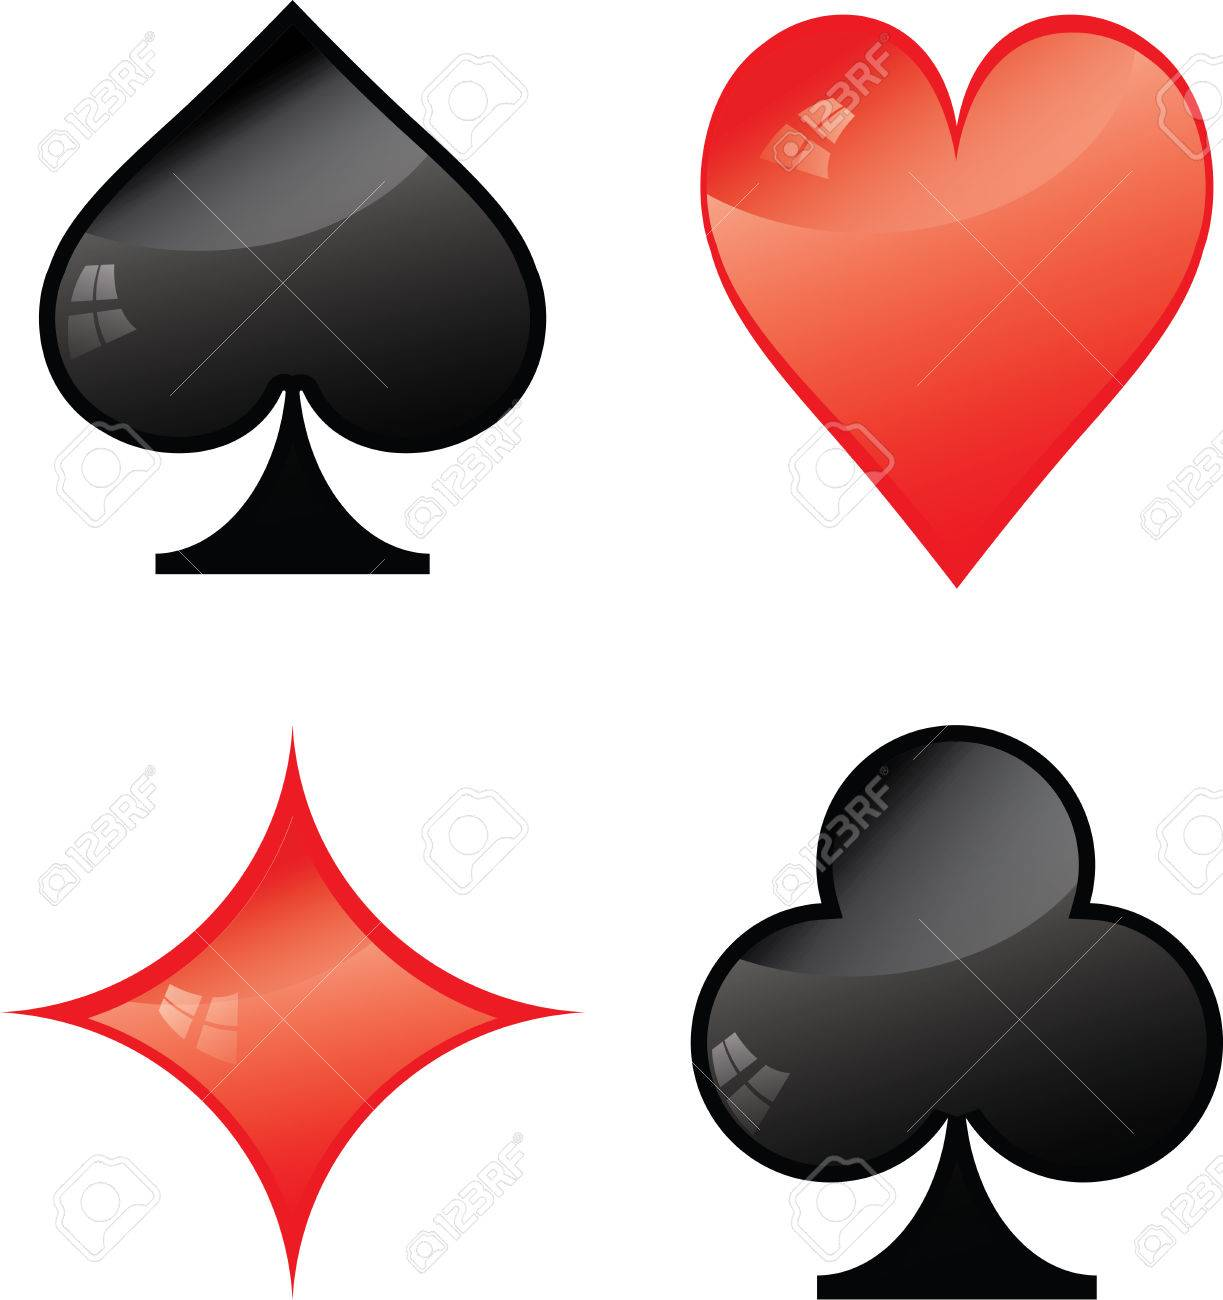 Vector Symbols Of Playing Cards Illustrator Eps 10 Royalty Free